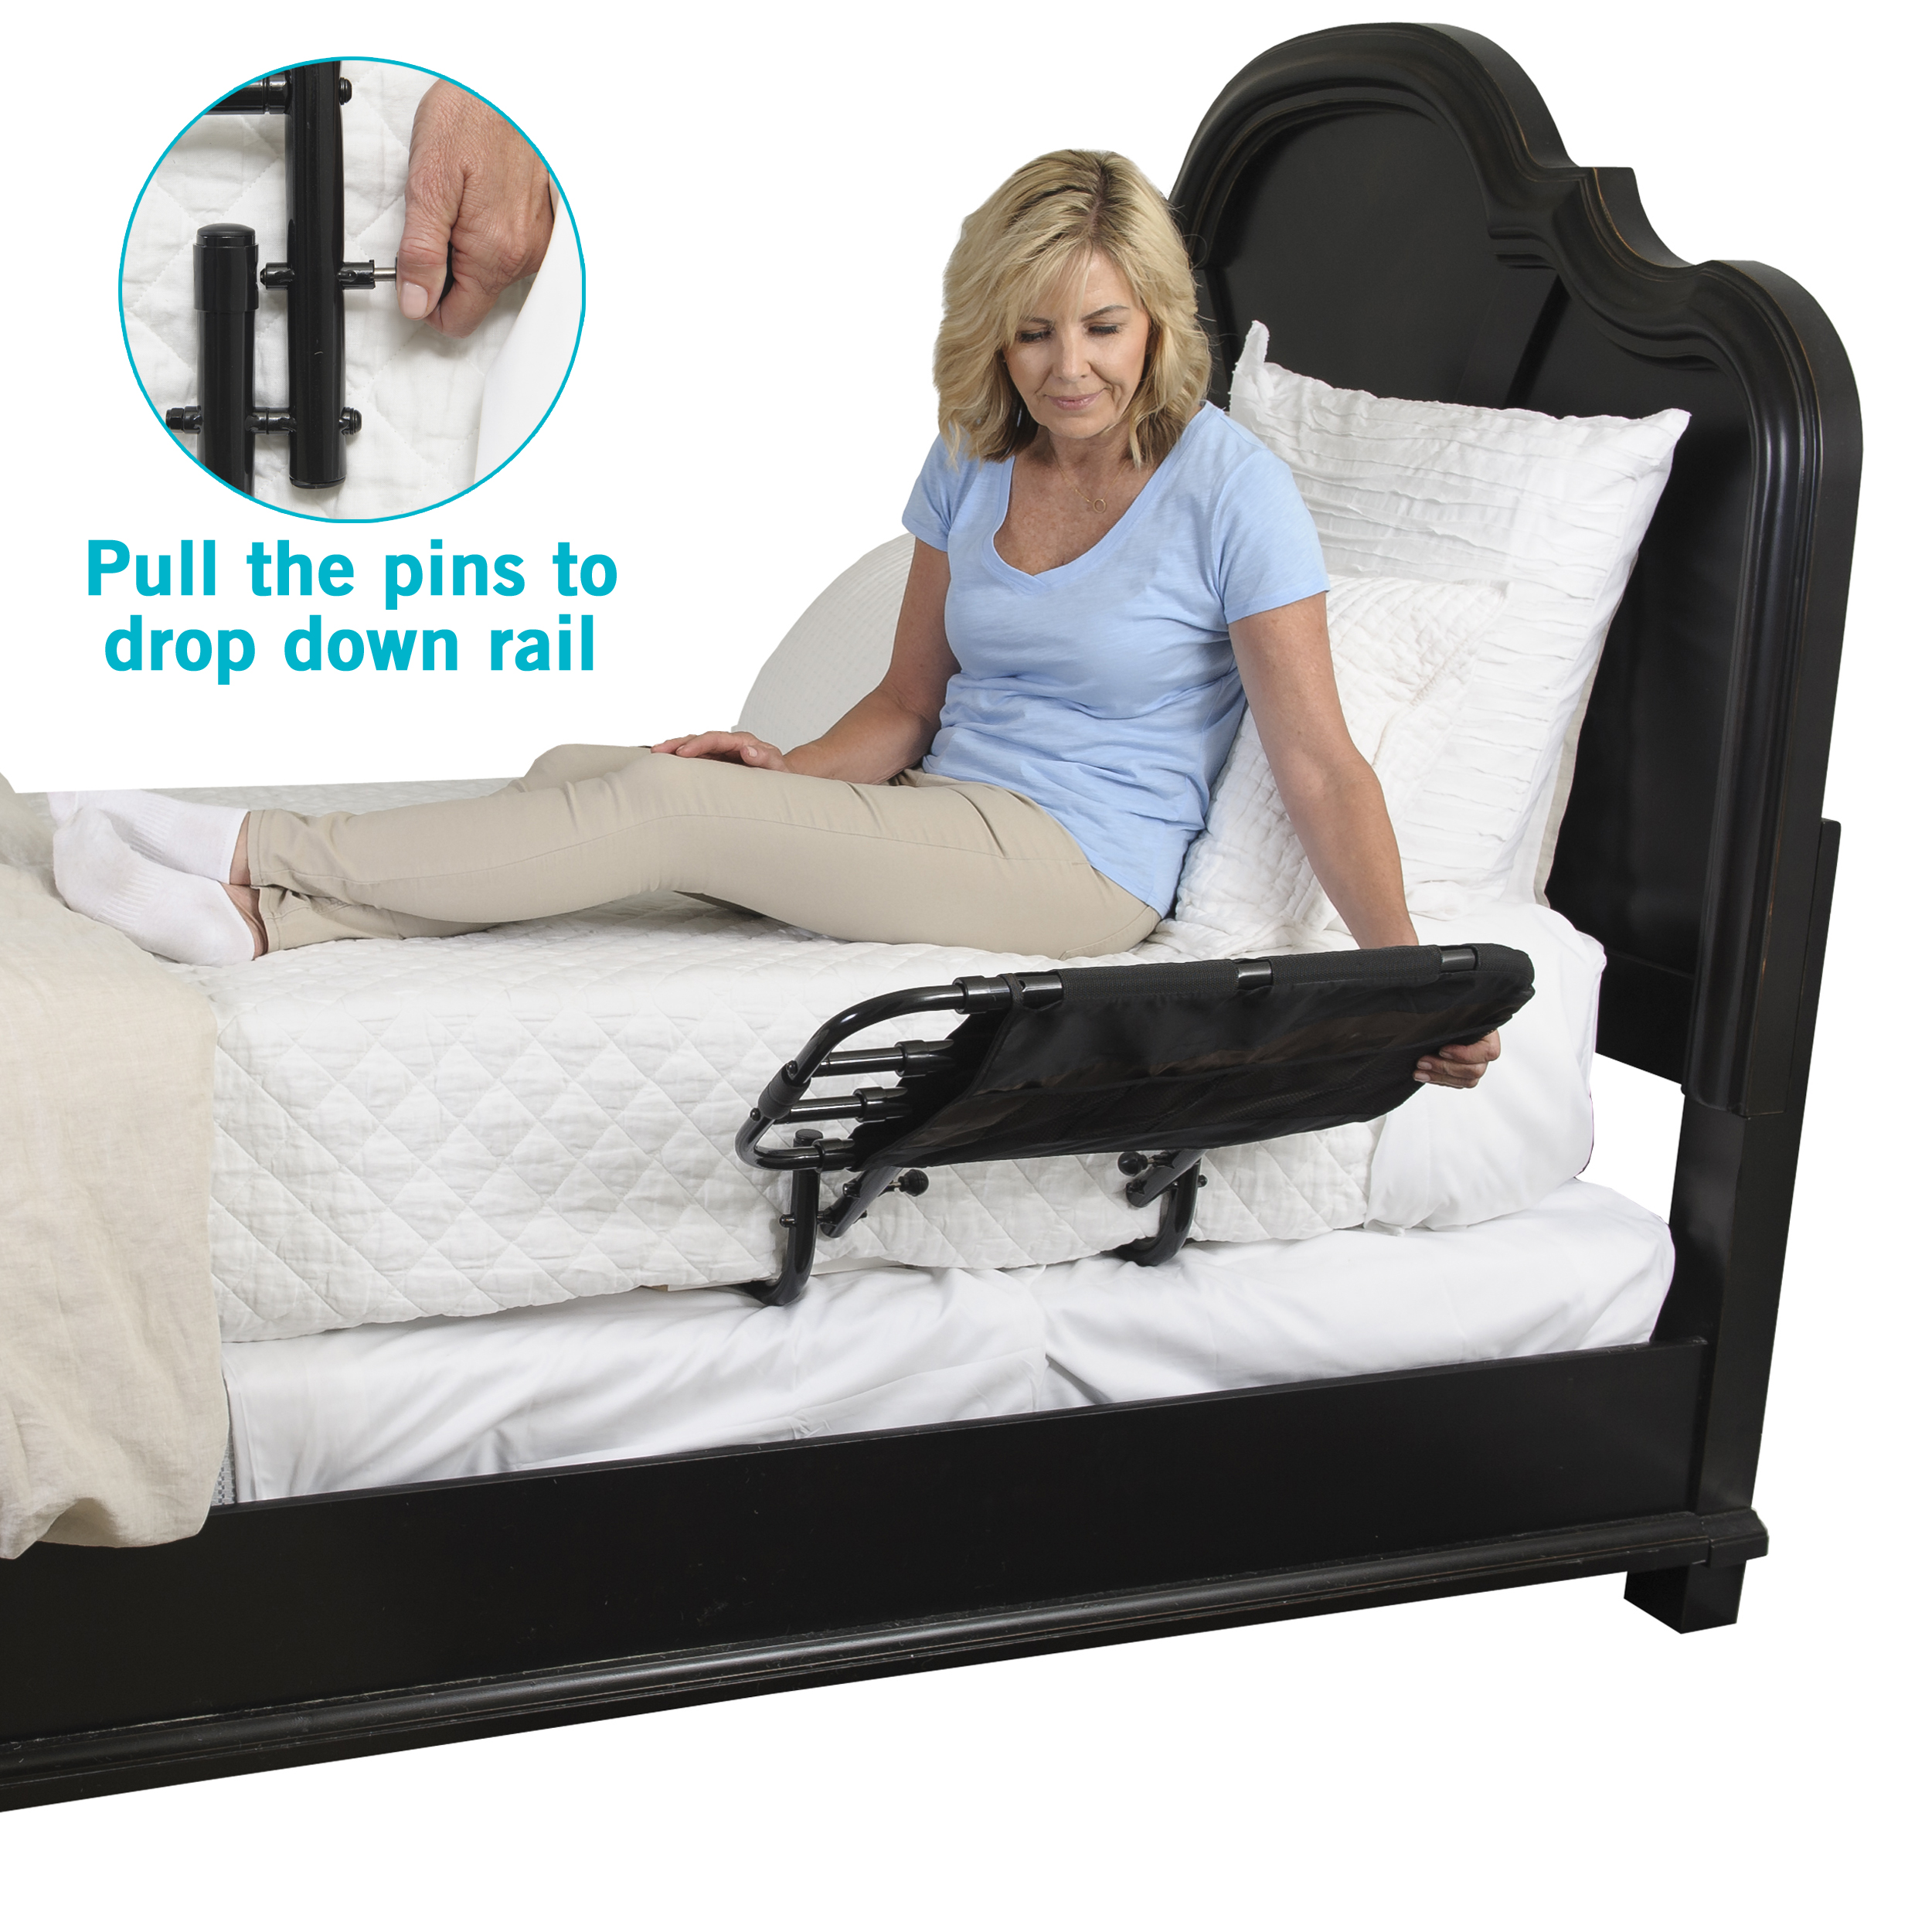 Safety 1st Portable Bed Rail Dark Grey Foldable Prevents Accident Metal Frame